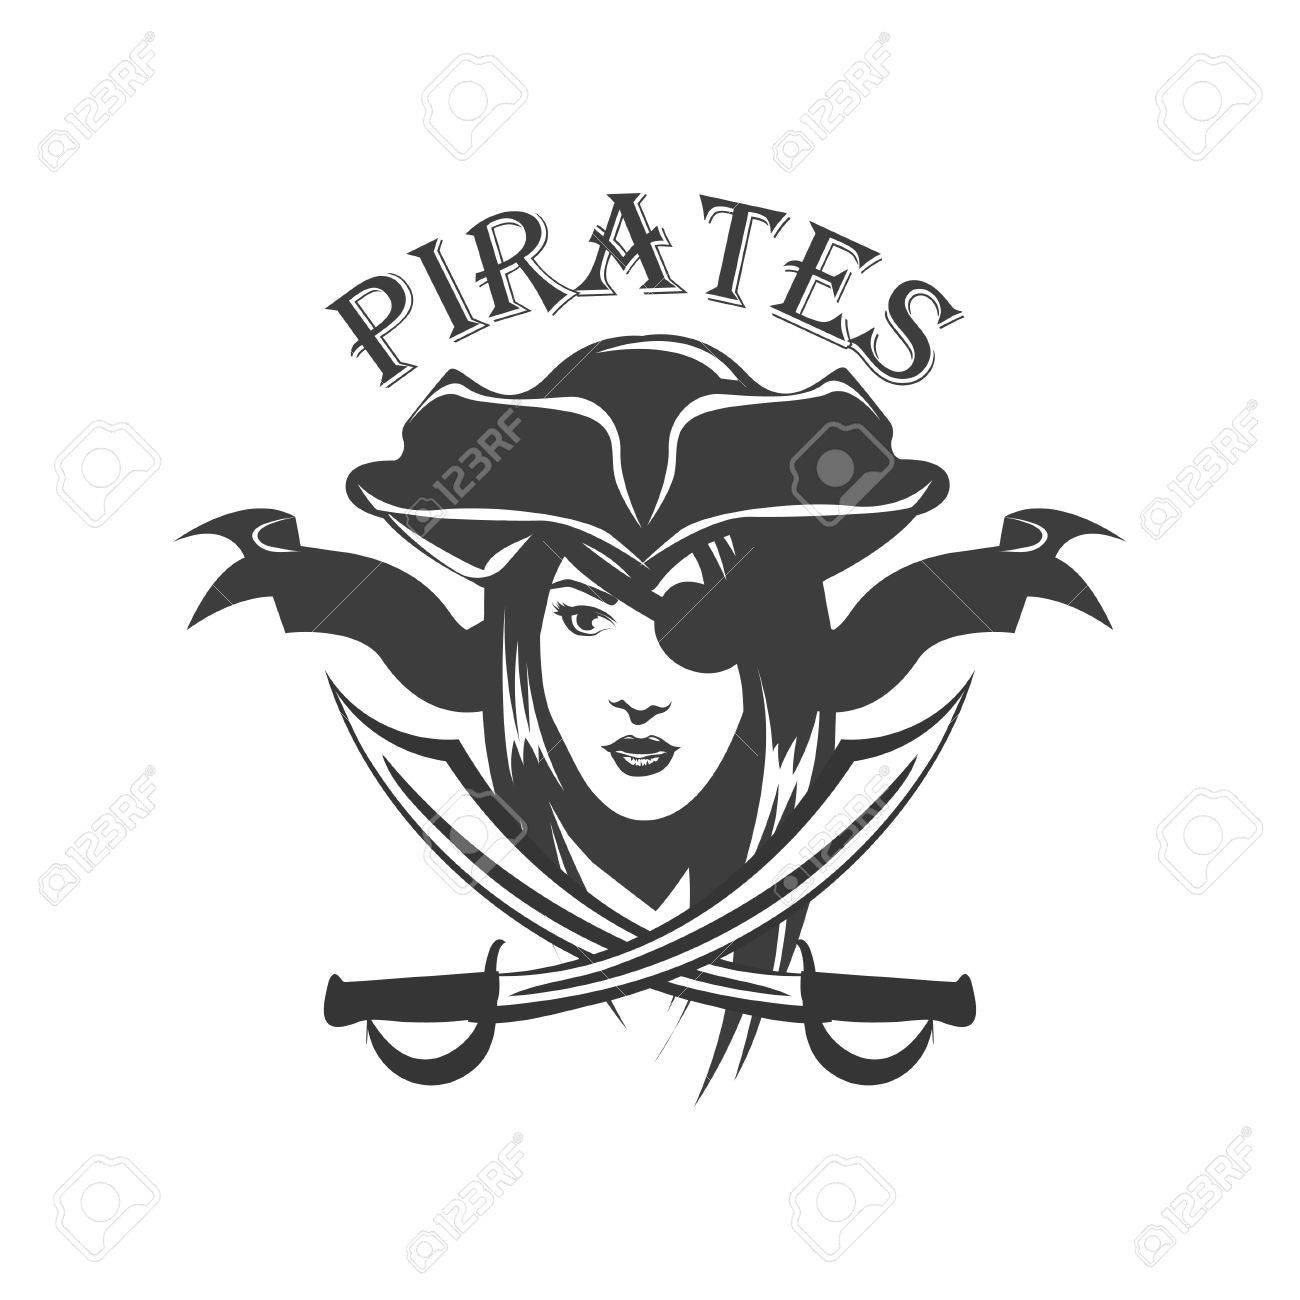 Pirate woman and crossed sabers badge - 52400205